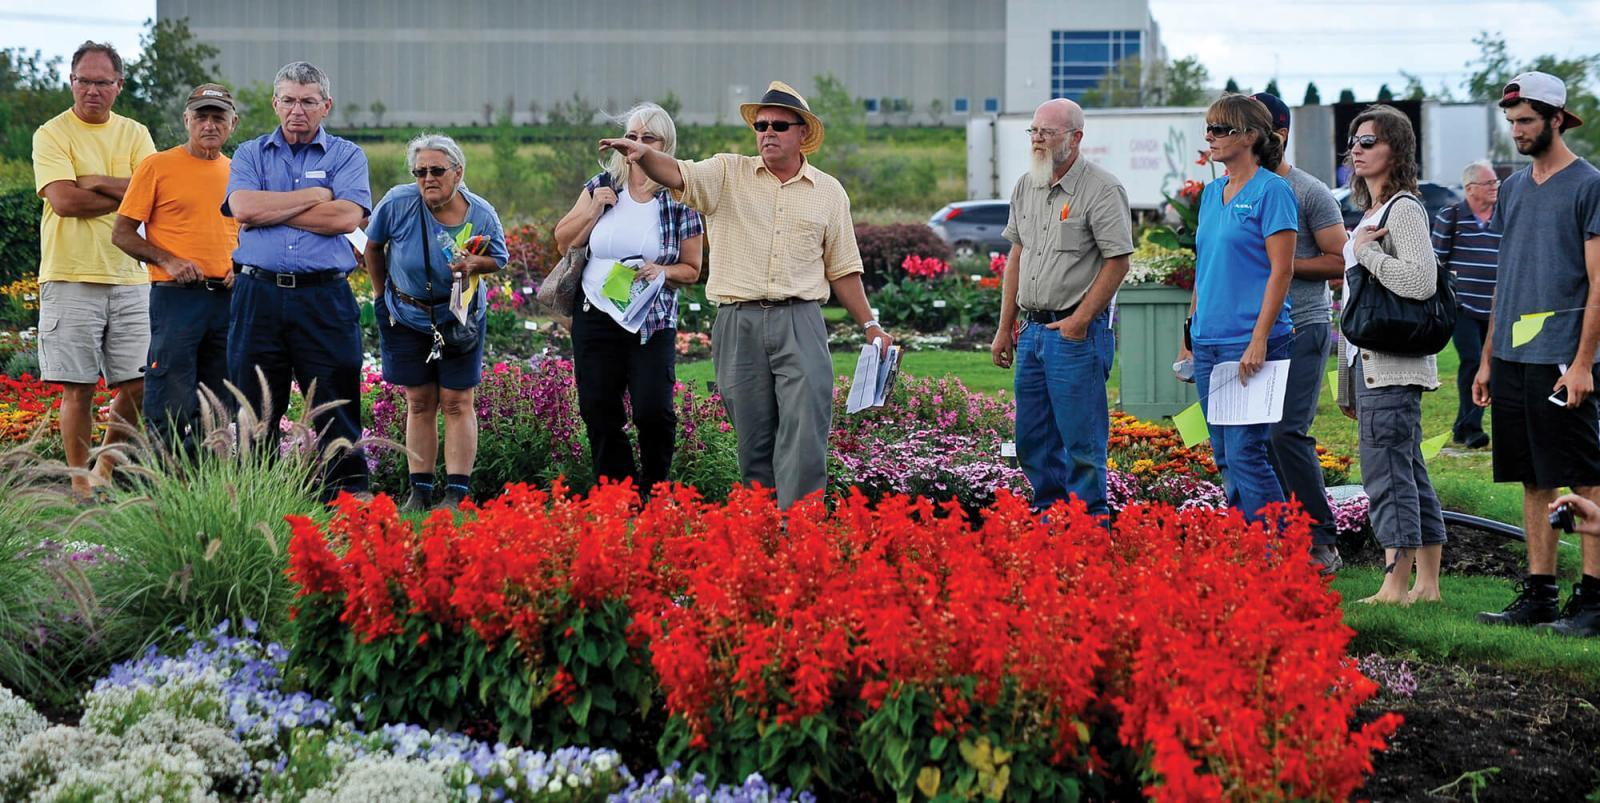 Over 70 people attended this year's trial garden open house for advice and information on the newest crop of ornamentals.